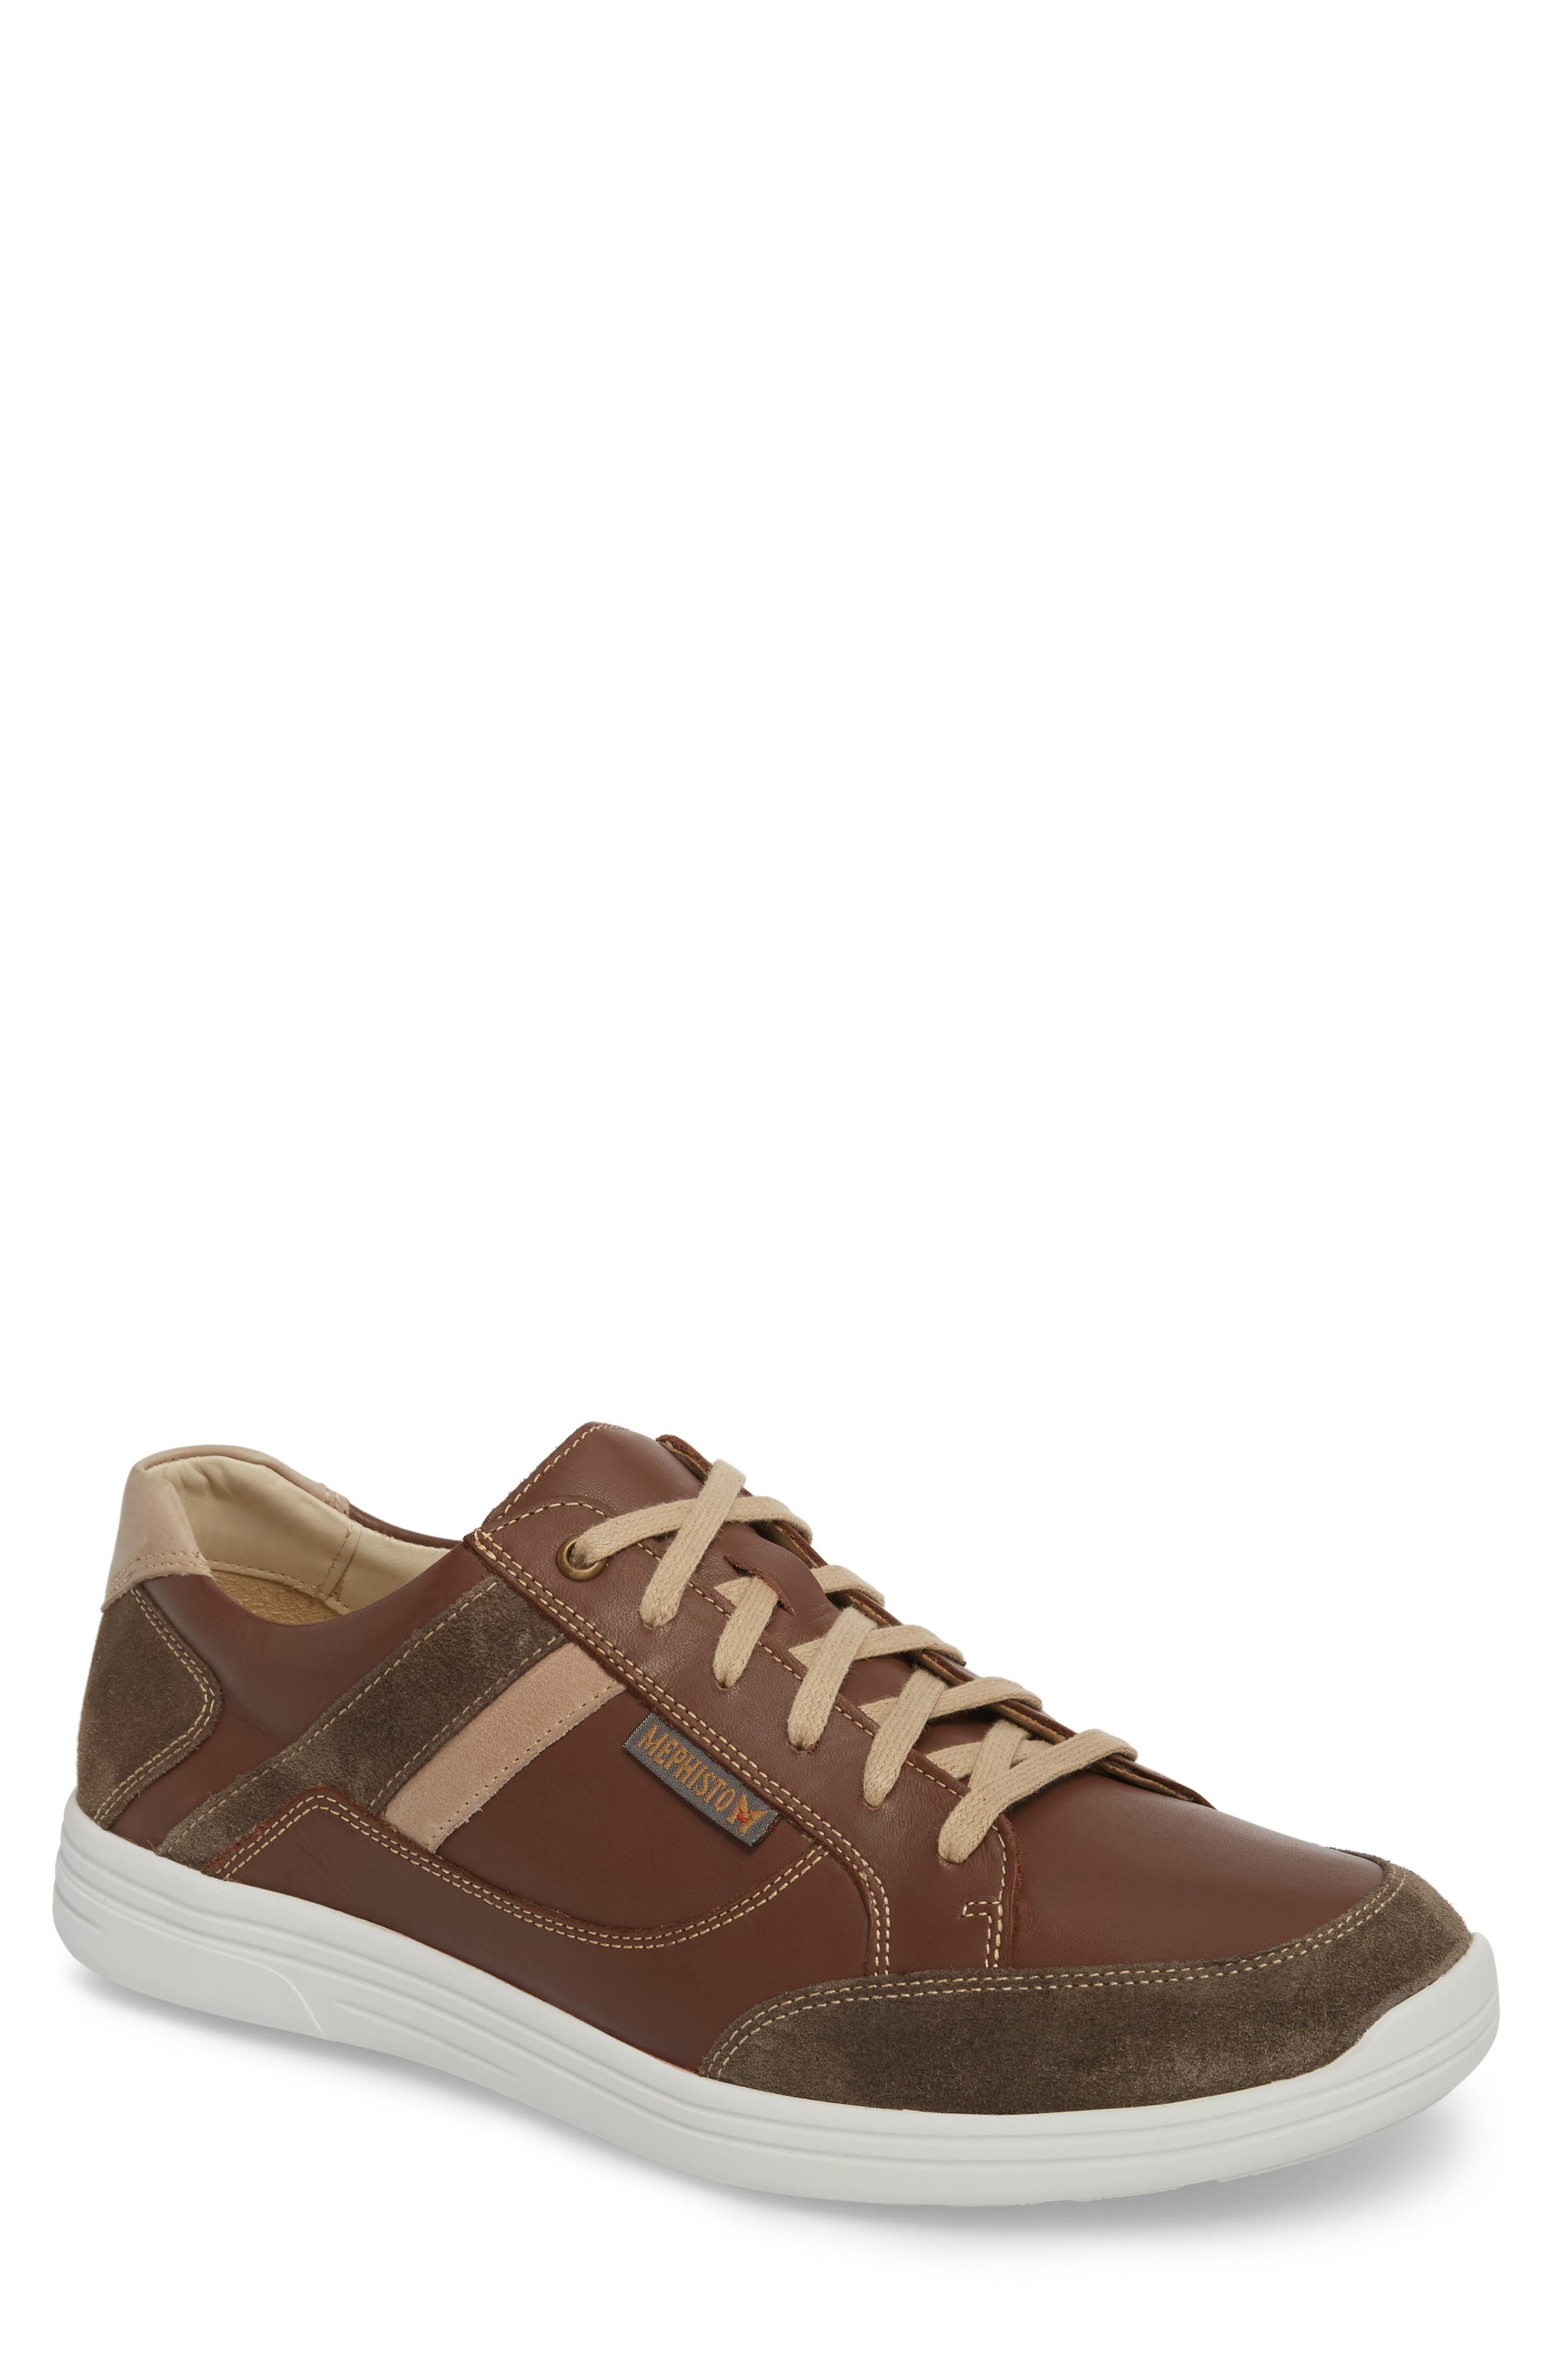 'Frank GoWing' Sneaker,                             Main thumbnail 1, color,                             Dark Taupe